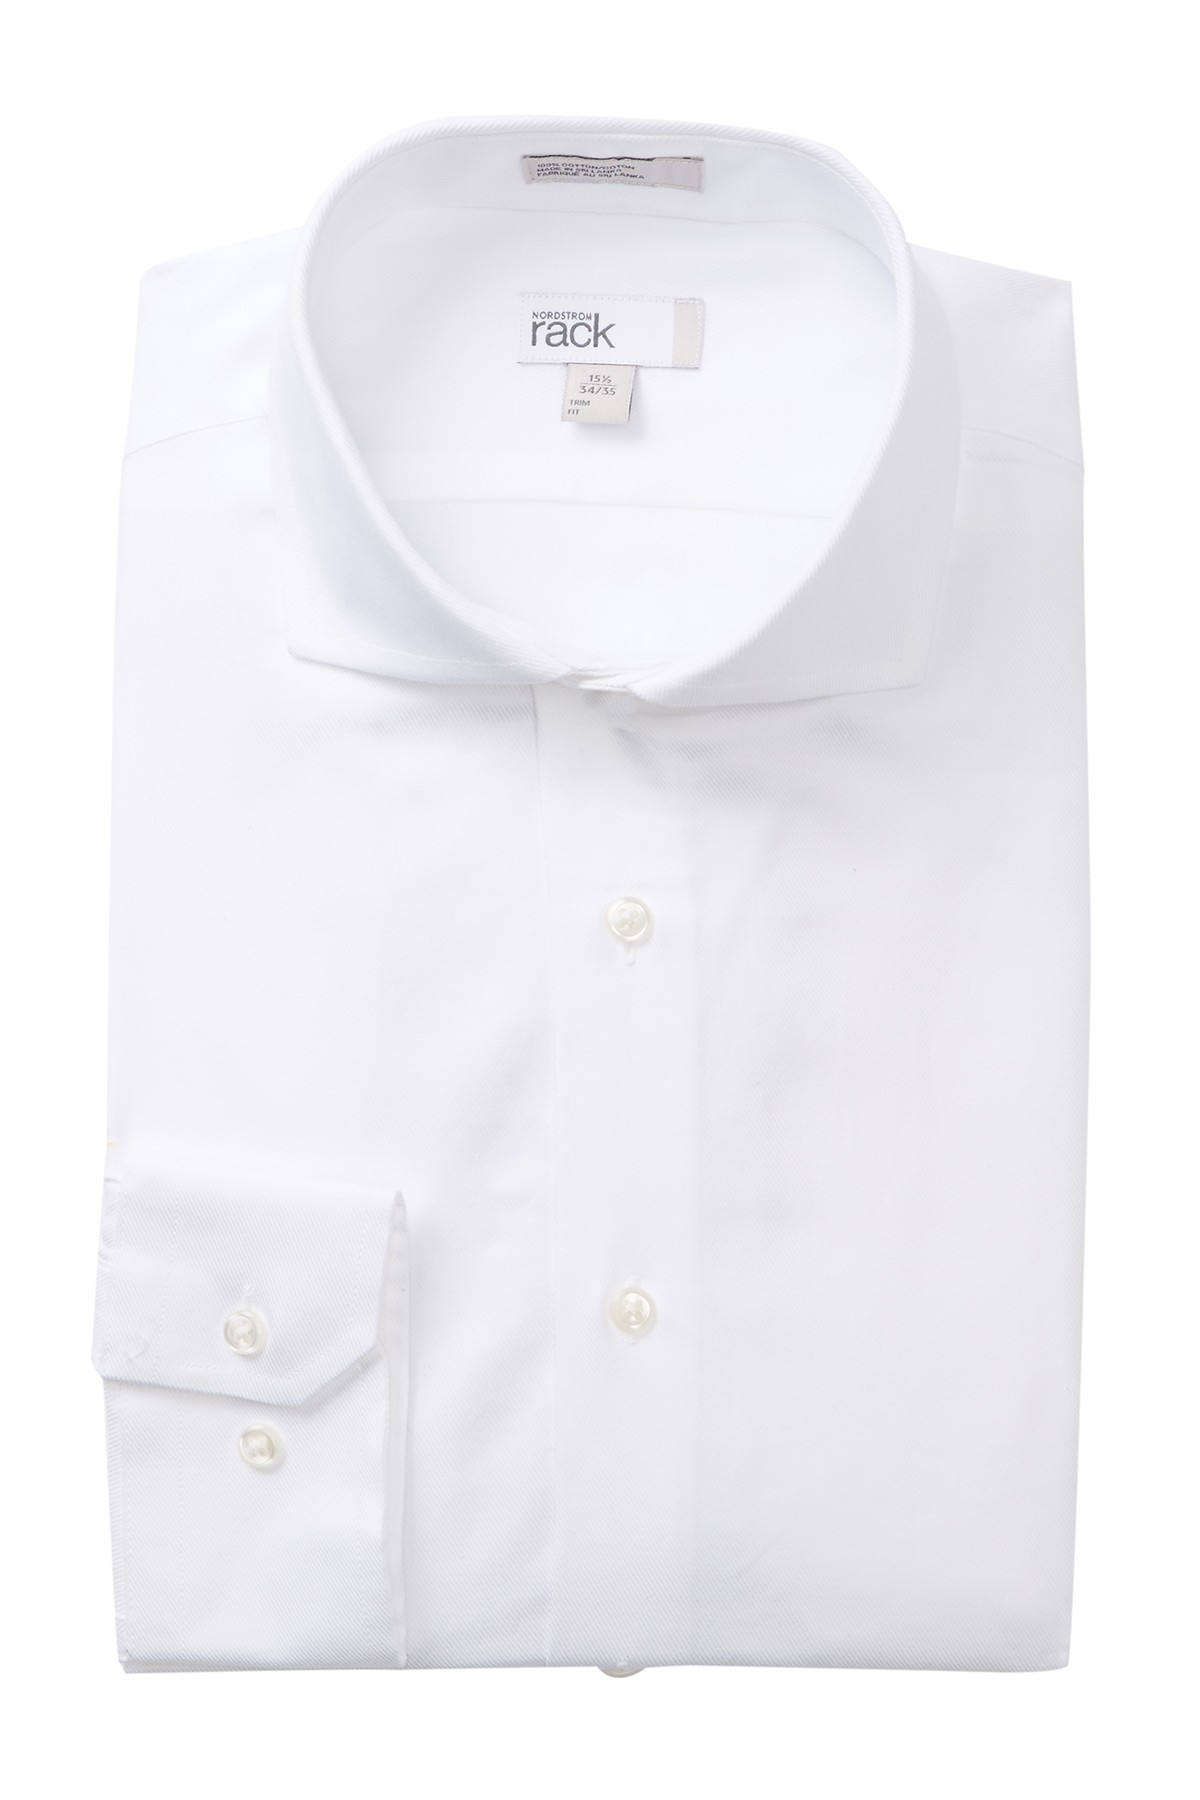 Nordstrom Mens Dress Shirt Fit Guide Rldm